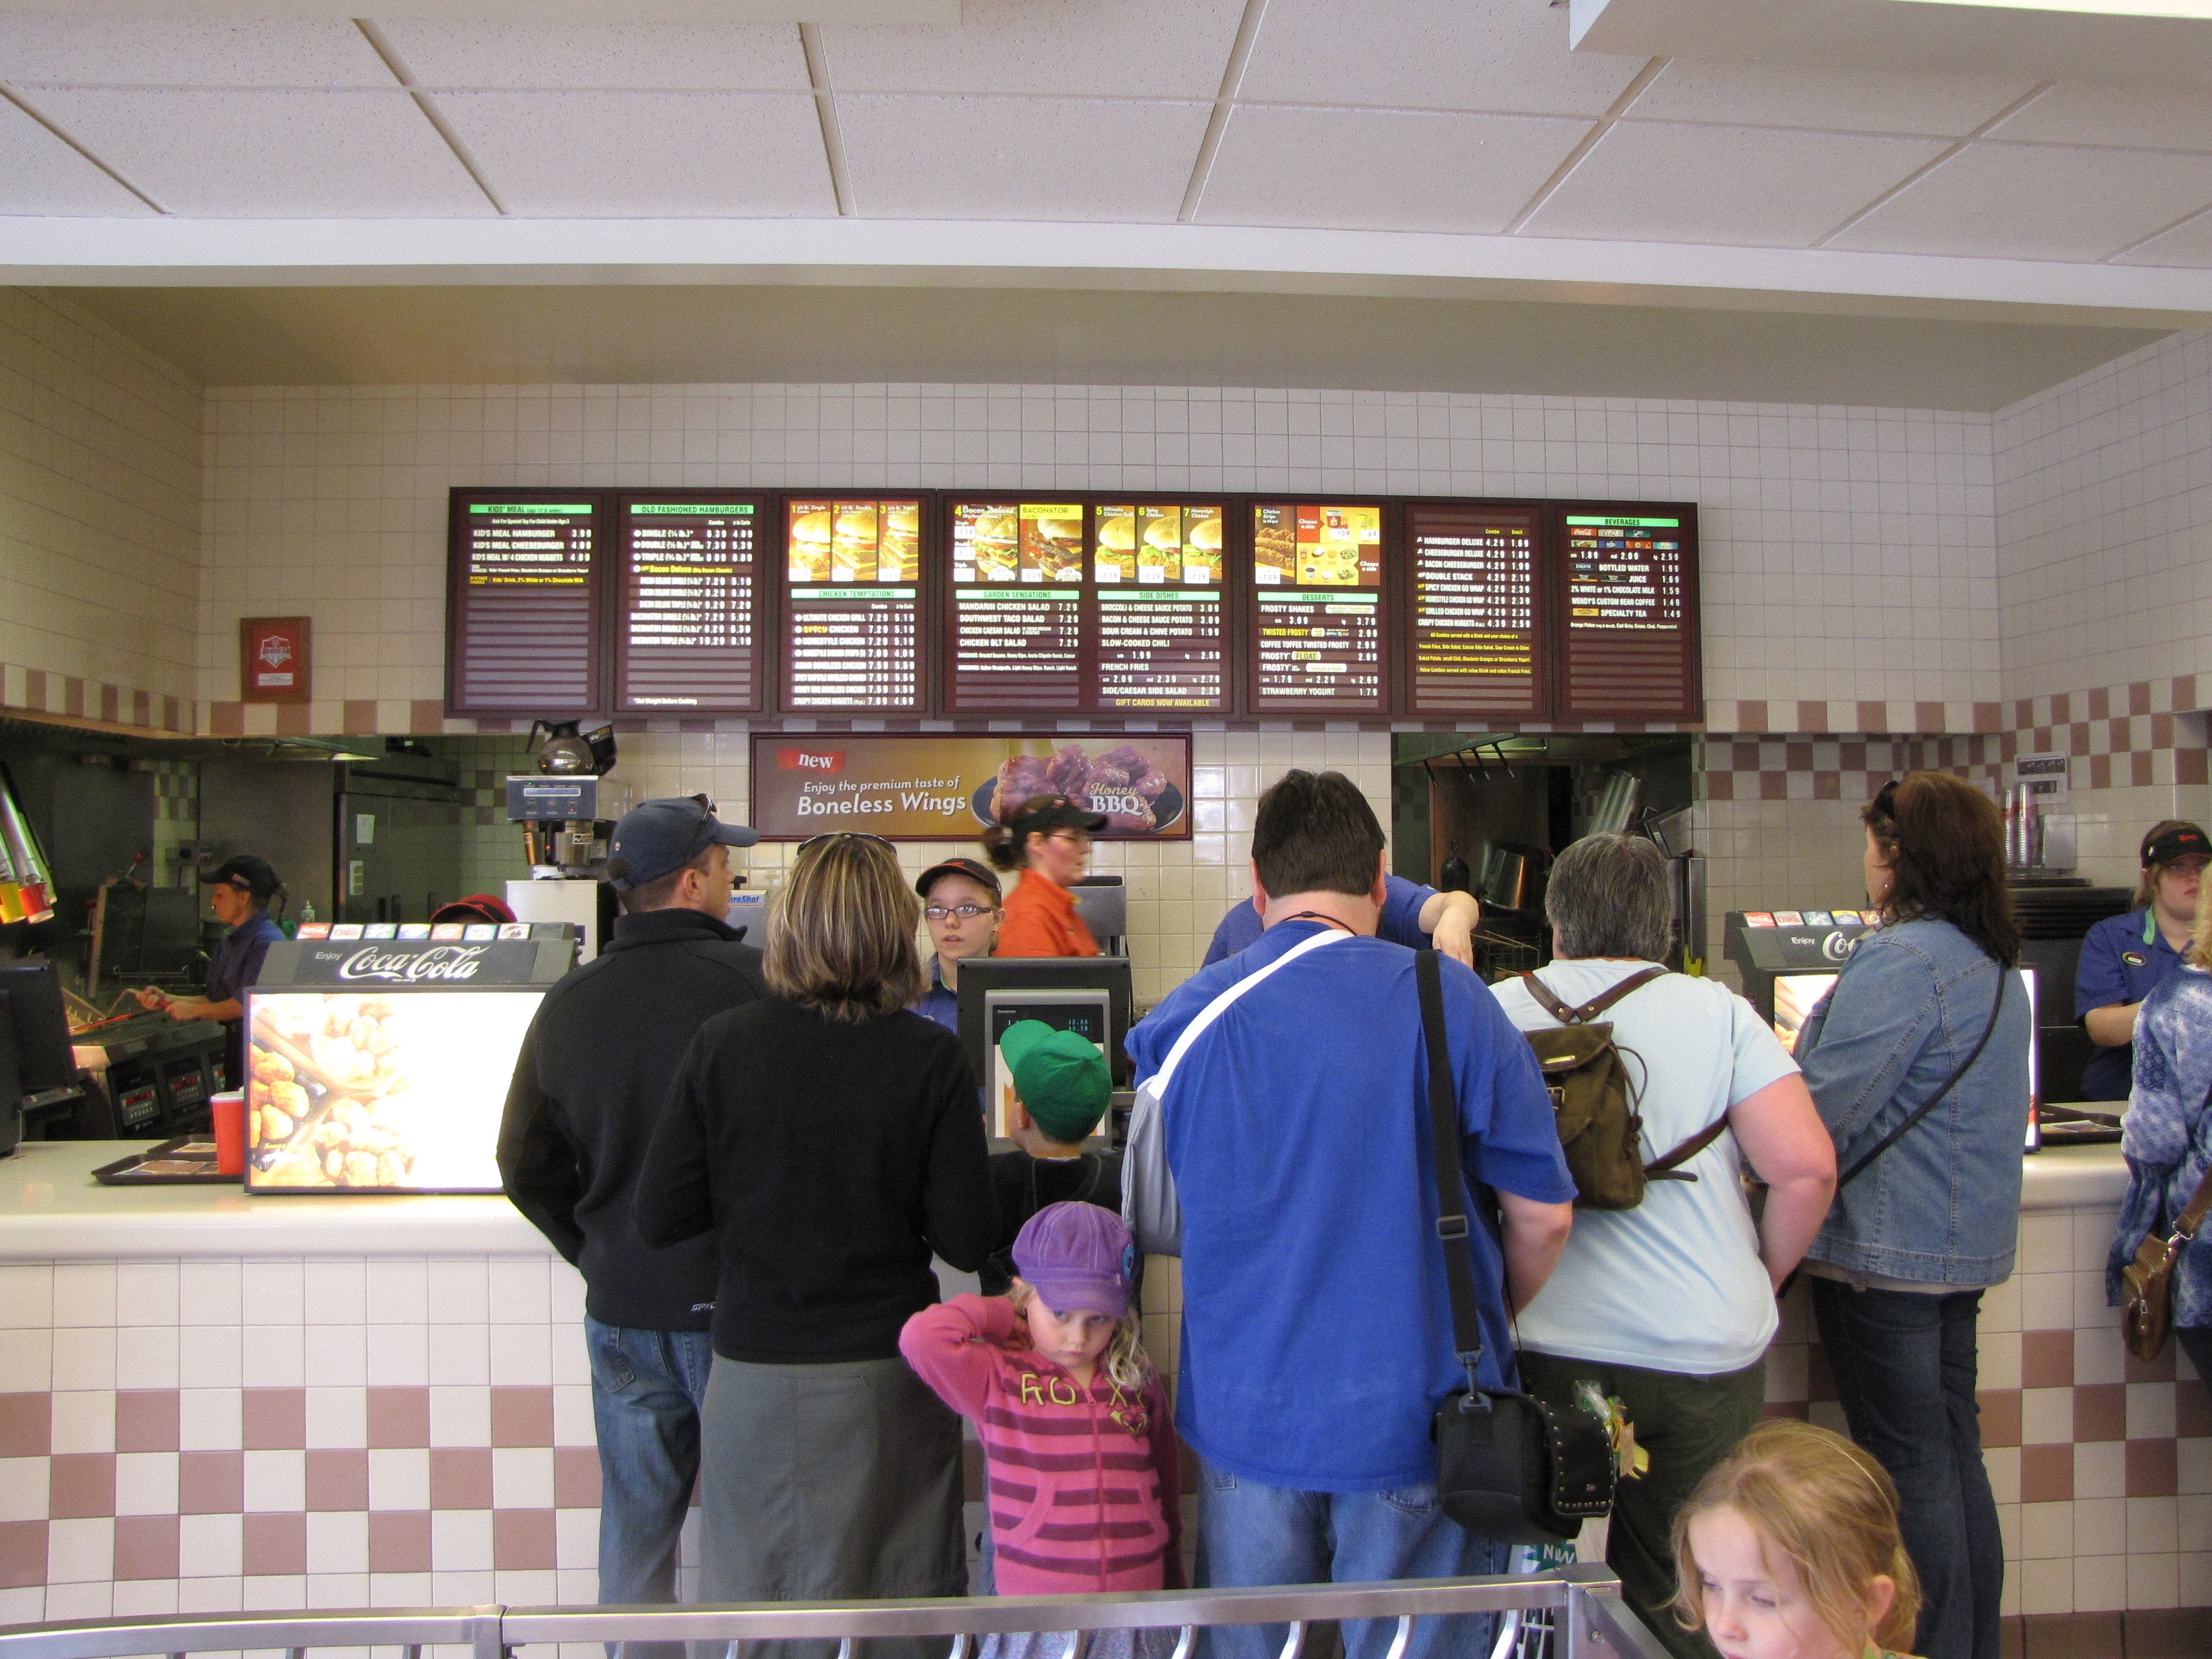 A busy front counter at a Wendy's restaurant in Niagara Falls, Ontario